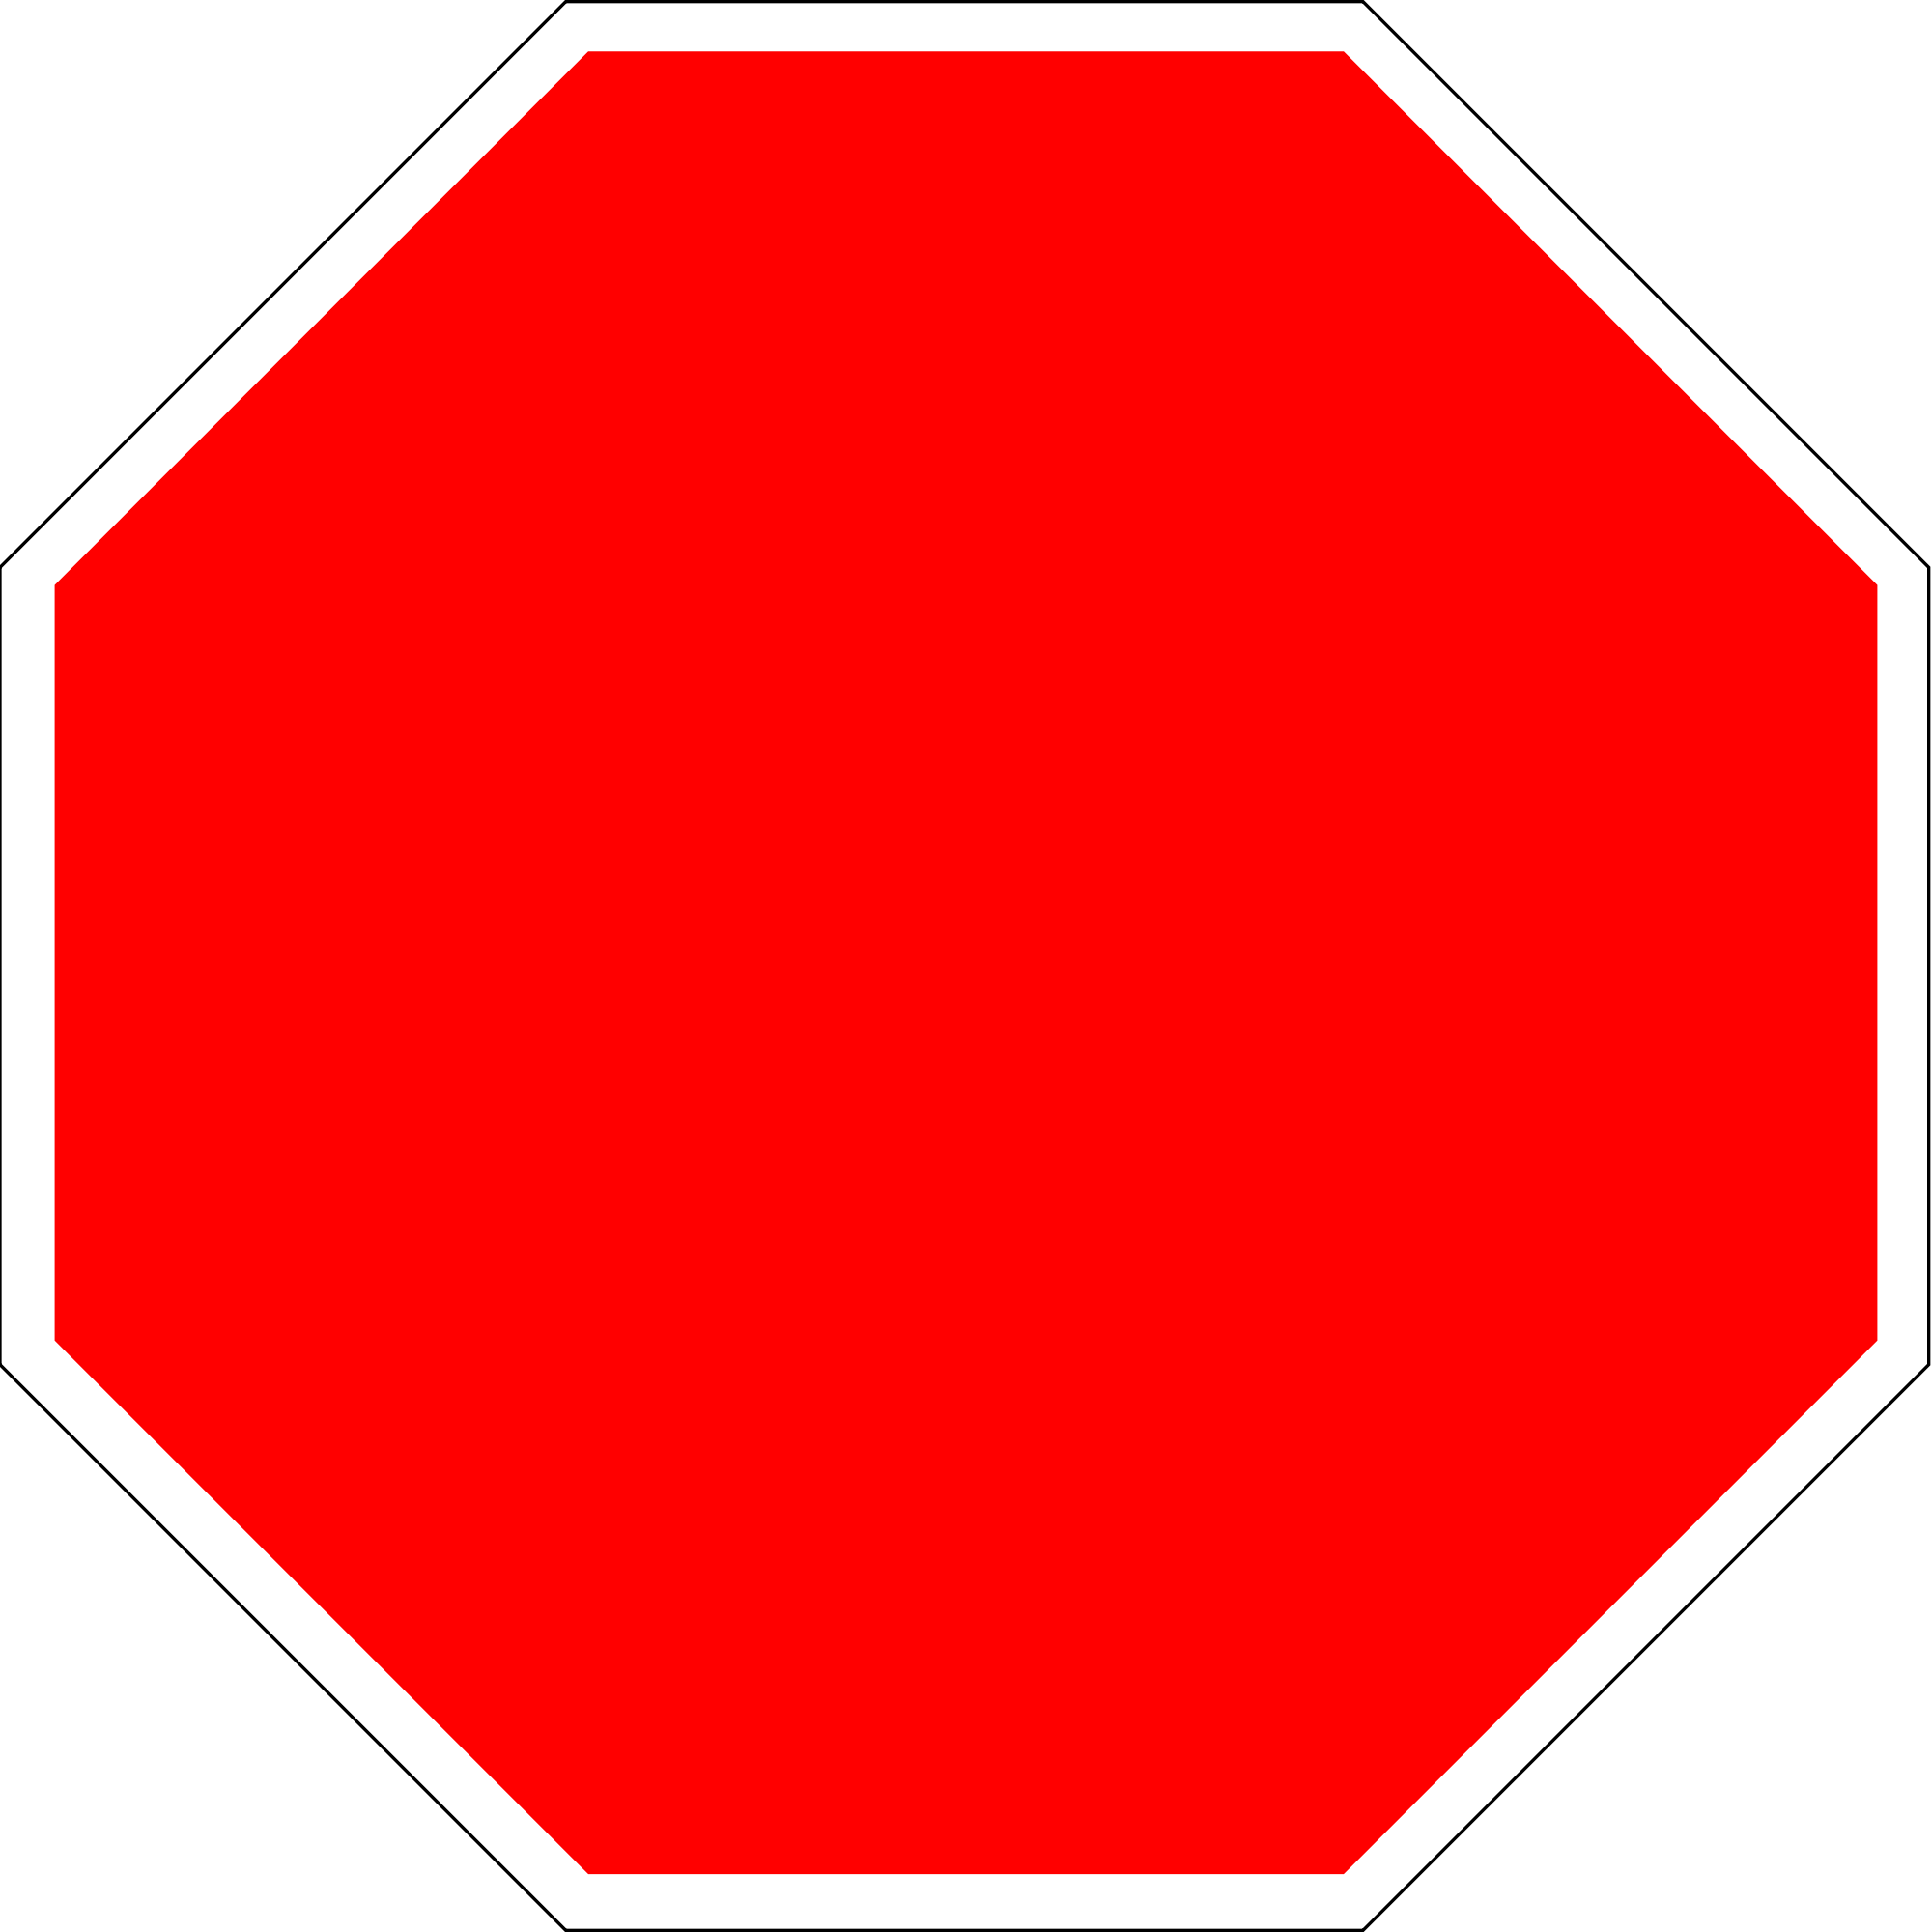 Blank Stop Sign Printable - ClipArt Best